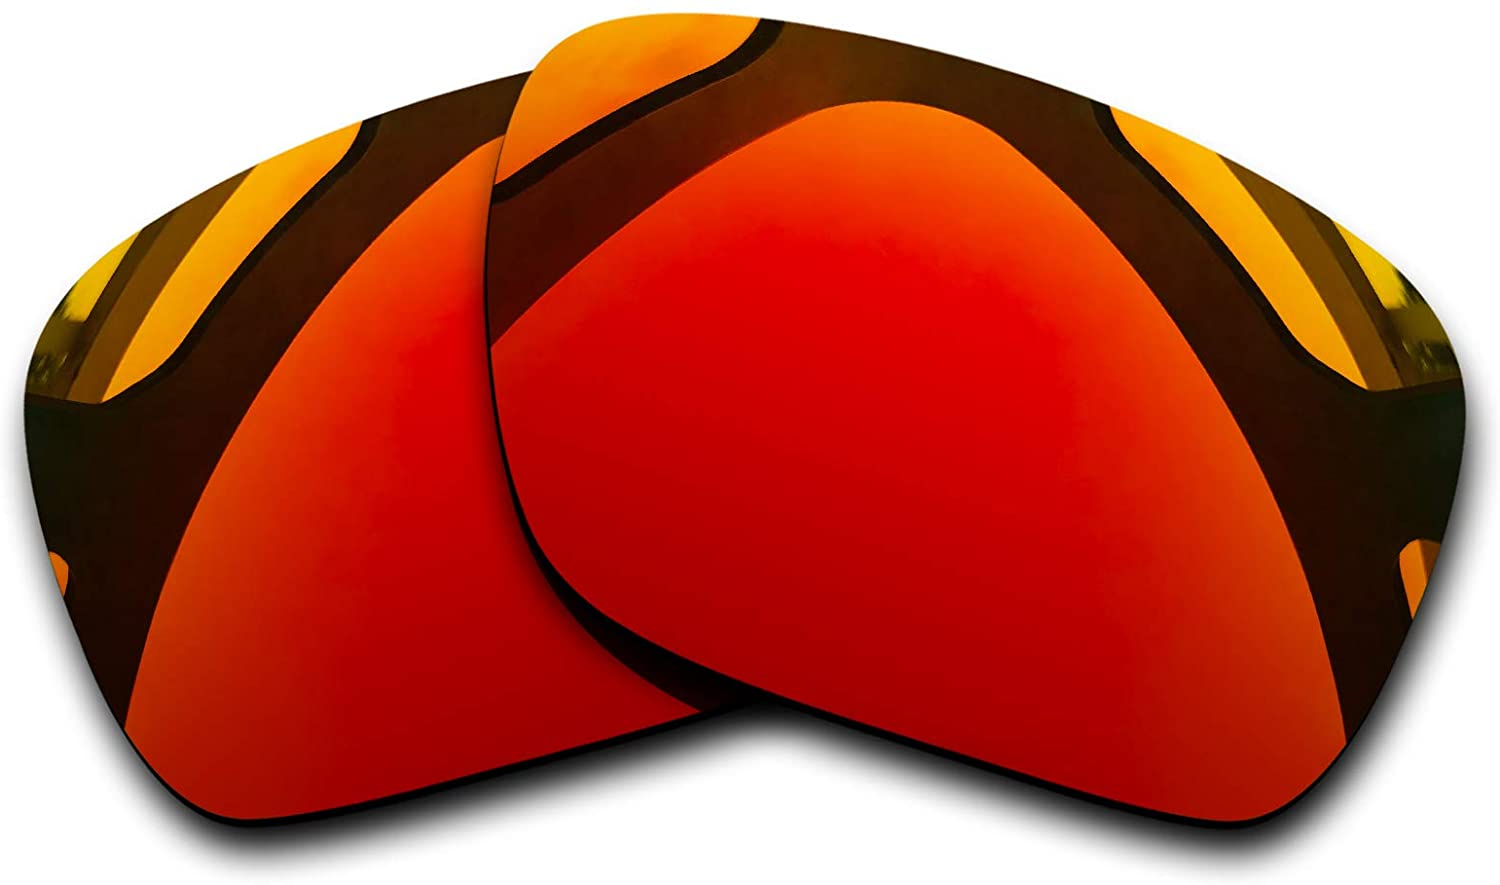 Shadespa Polarized Replacement Lenses for Oakley TwoFace OO9189 Sunglasses - Options